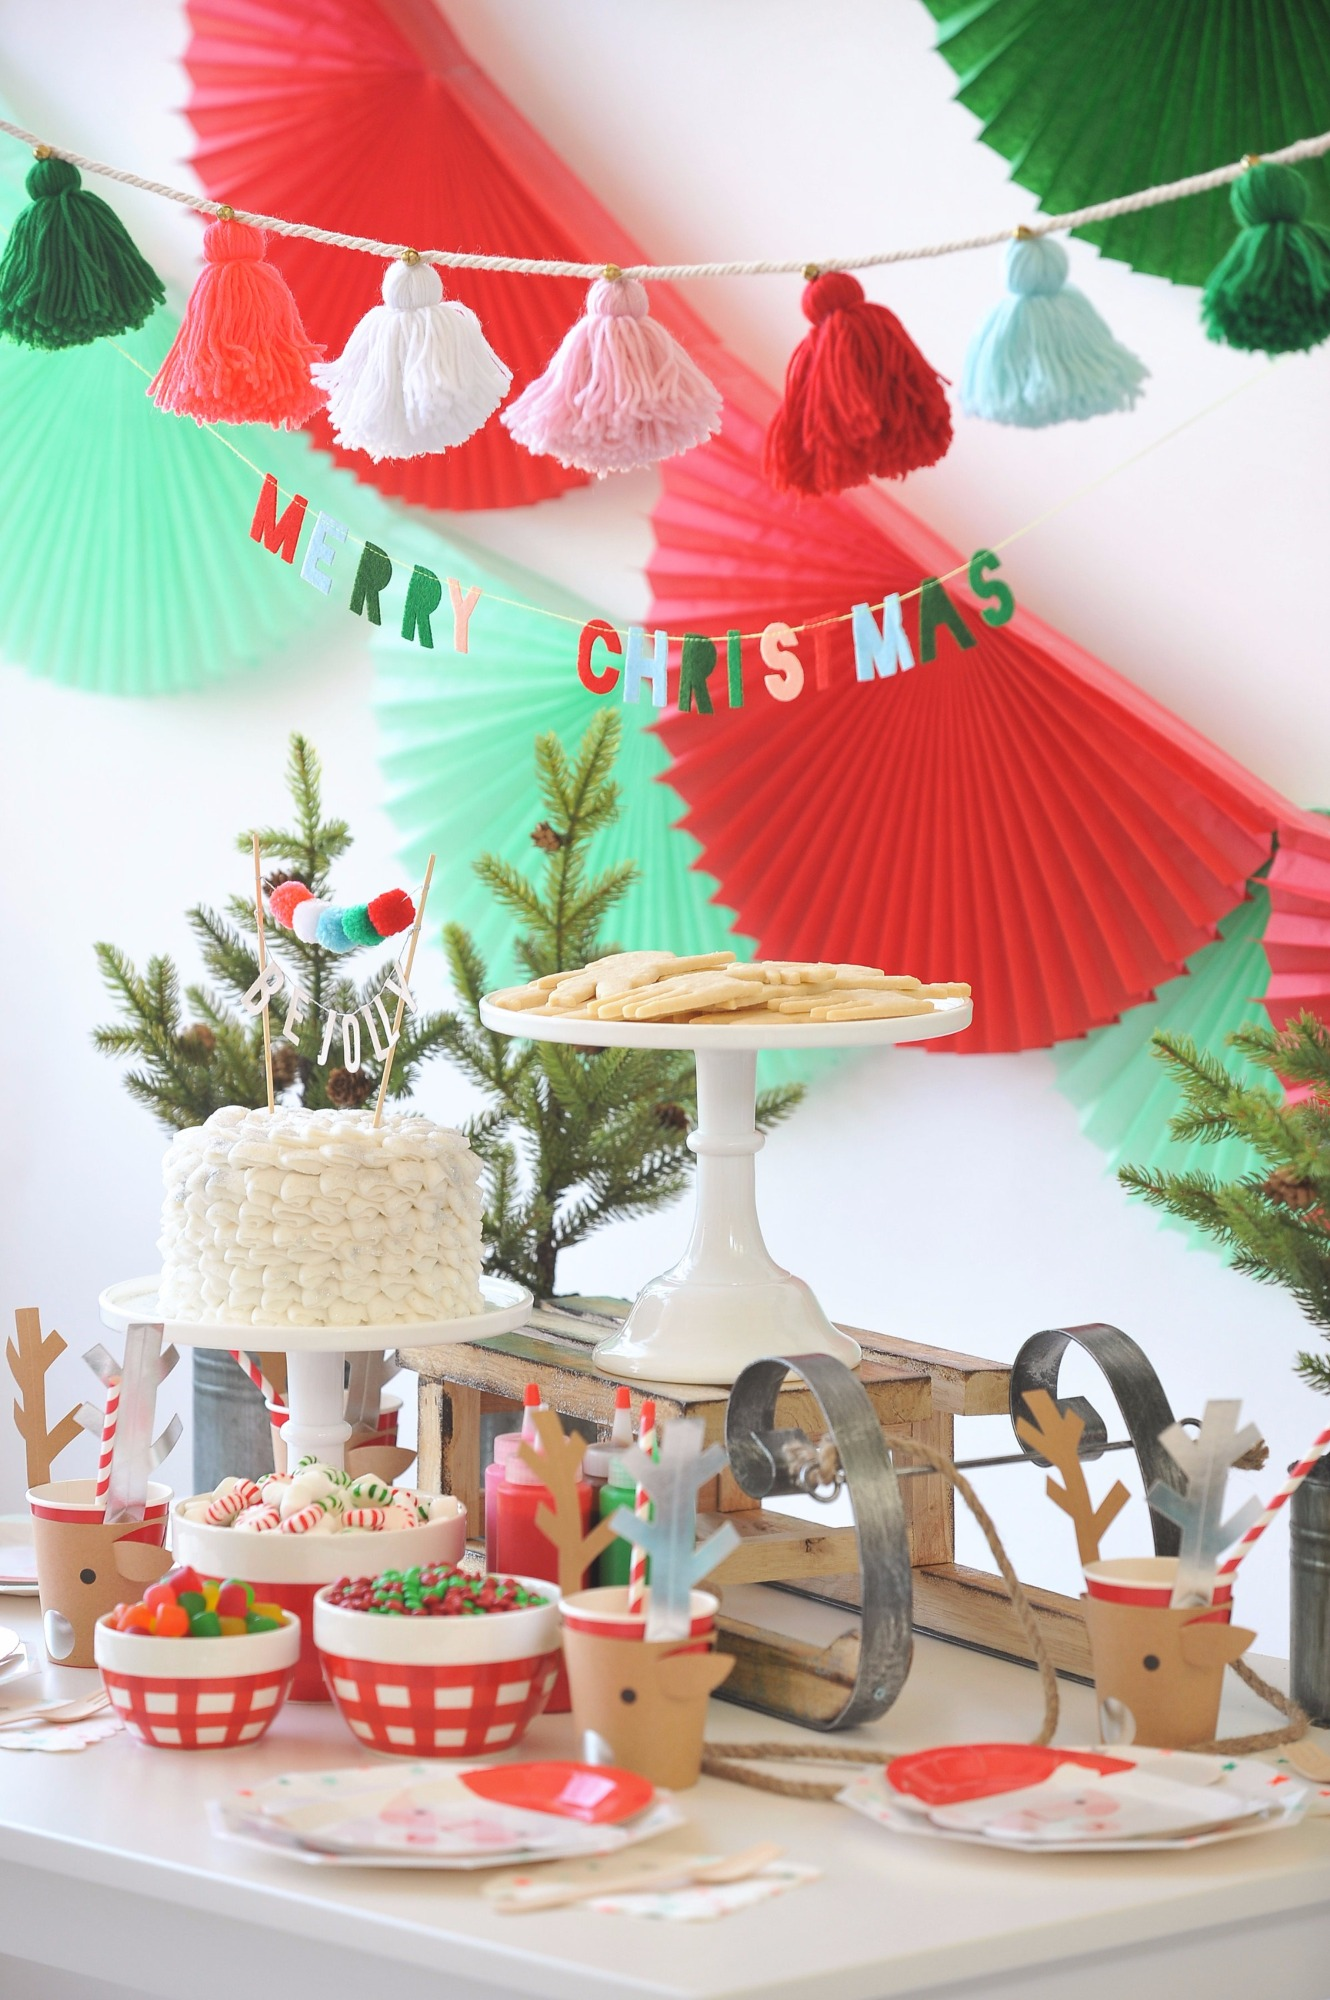 Cookies Plates Cake from Holly Jolly Party by Happy Wish Company | Black Twine